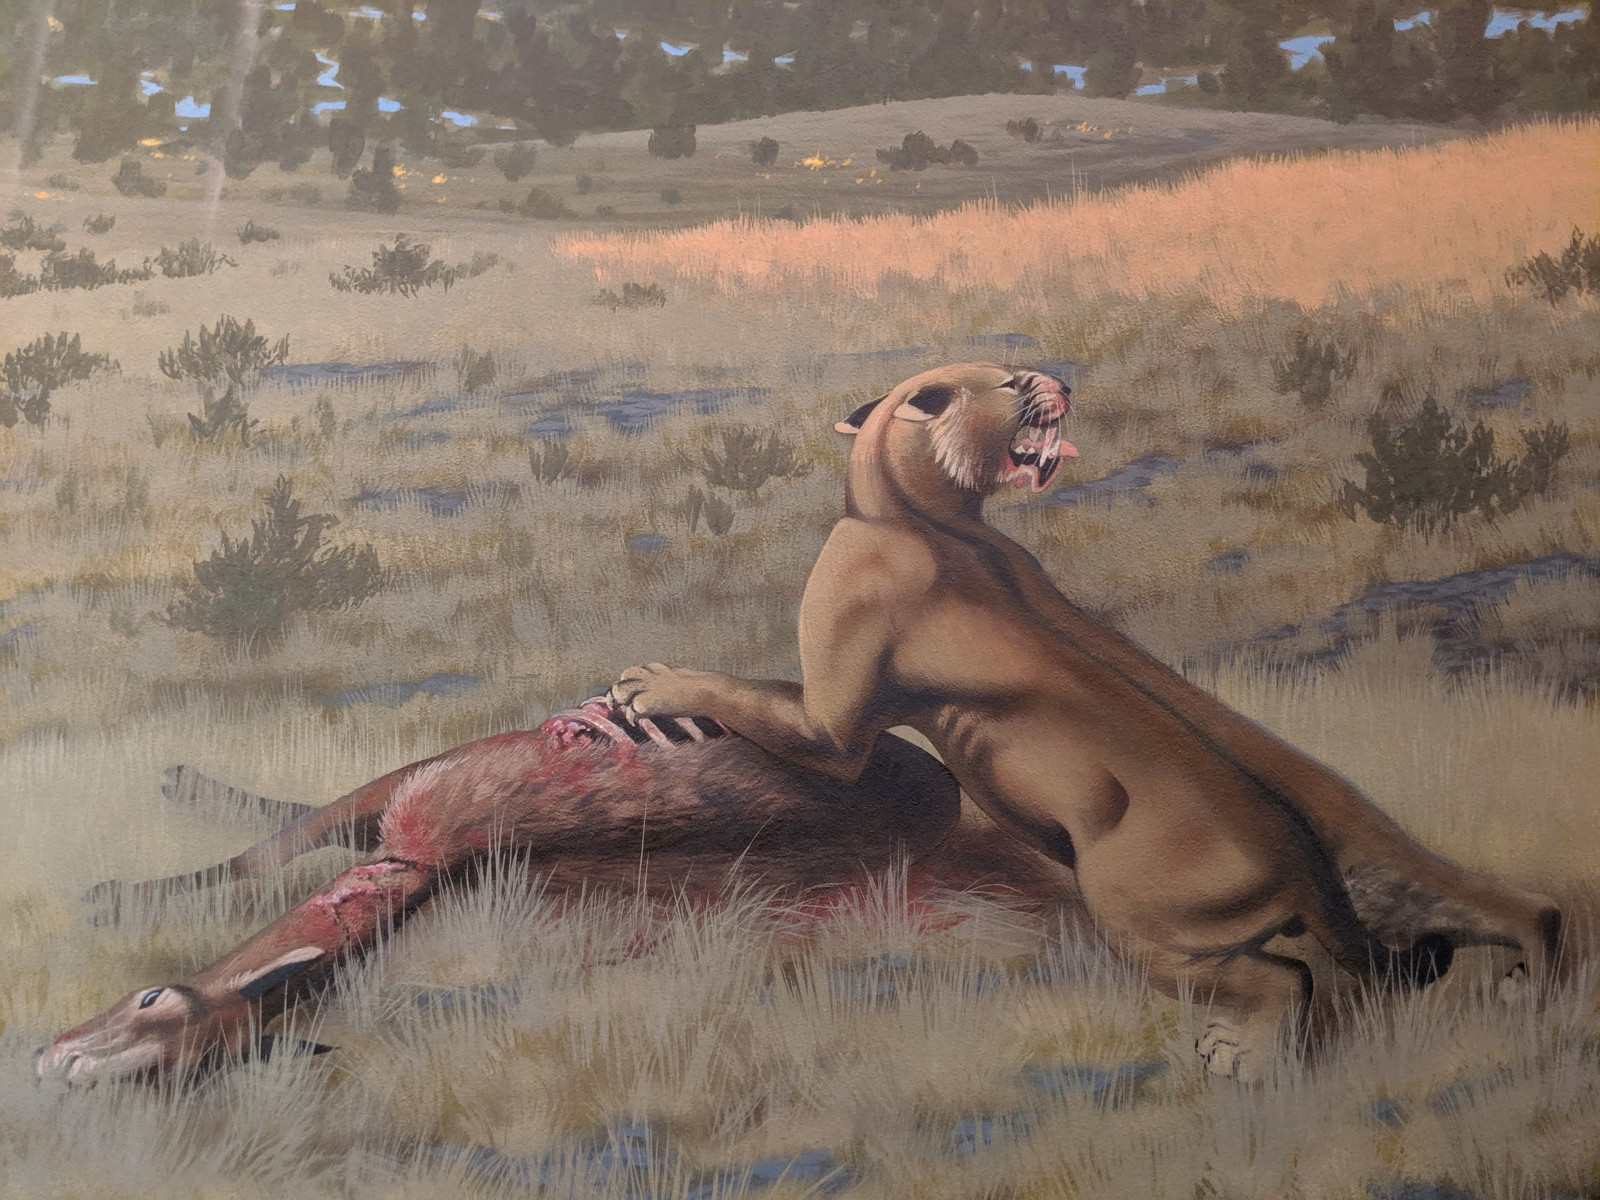 An artist's depiction of Machairodus lahayishupup eating Hemiauchenia, a camel relative. The image is part of a mural of the Rattlesnake Formation of central Oregon, where fossils of the newly identified species have been found. The mural is exhibited at John Day Fossil Beds National Monument, part of the National Park Service.